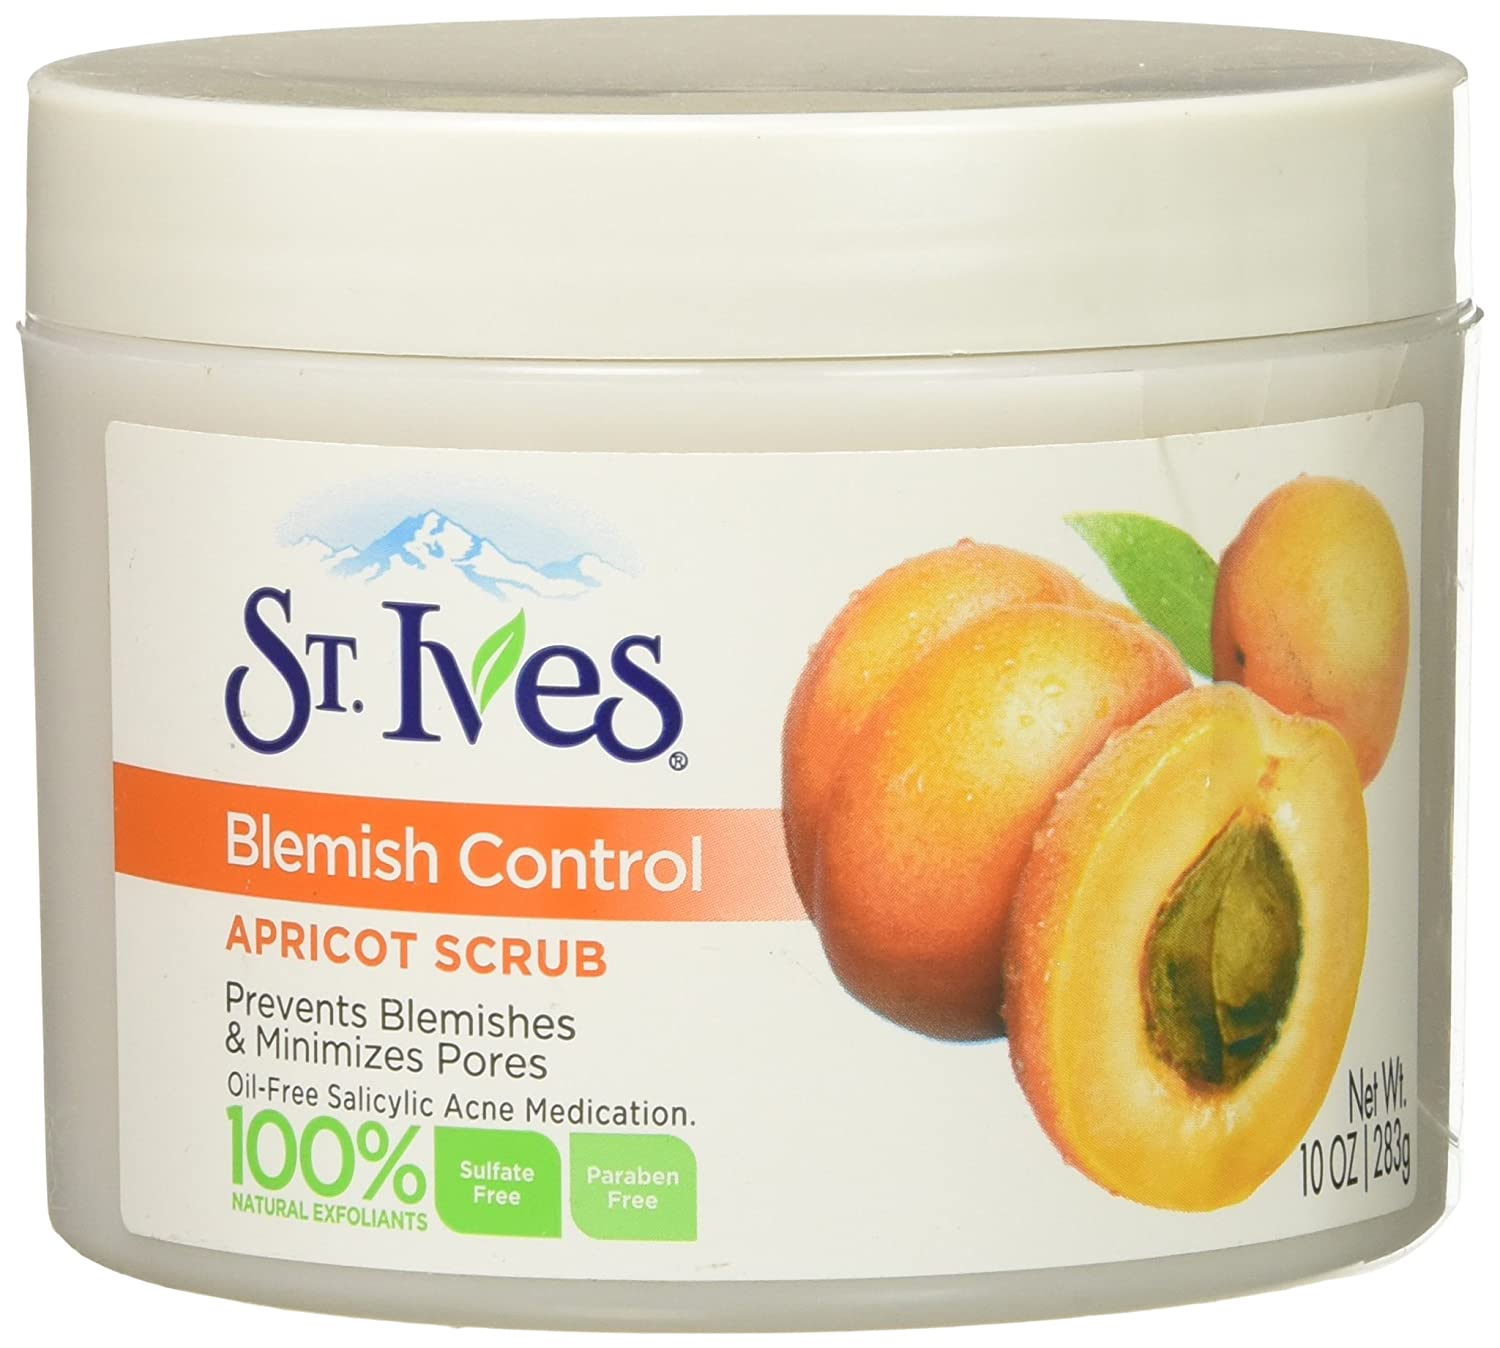 St. Ives Apricot Scrub Naturally Clear Blemish and Blackhead Control, 10 oz 11242